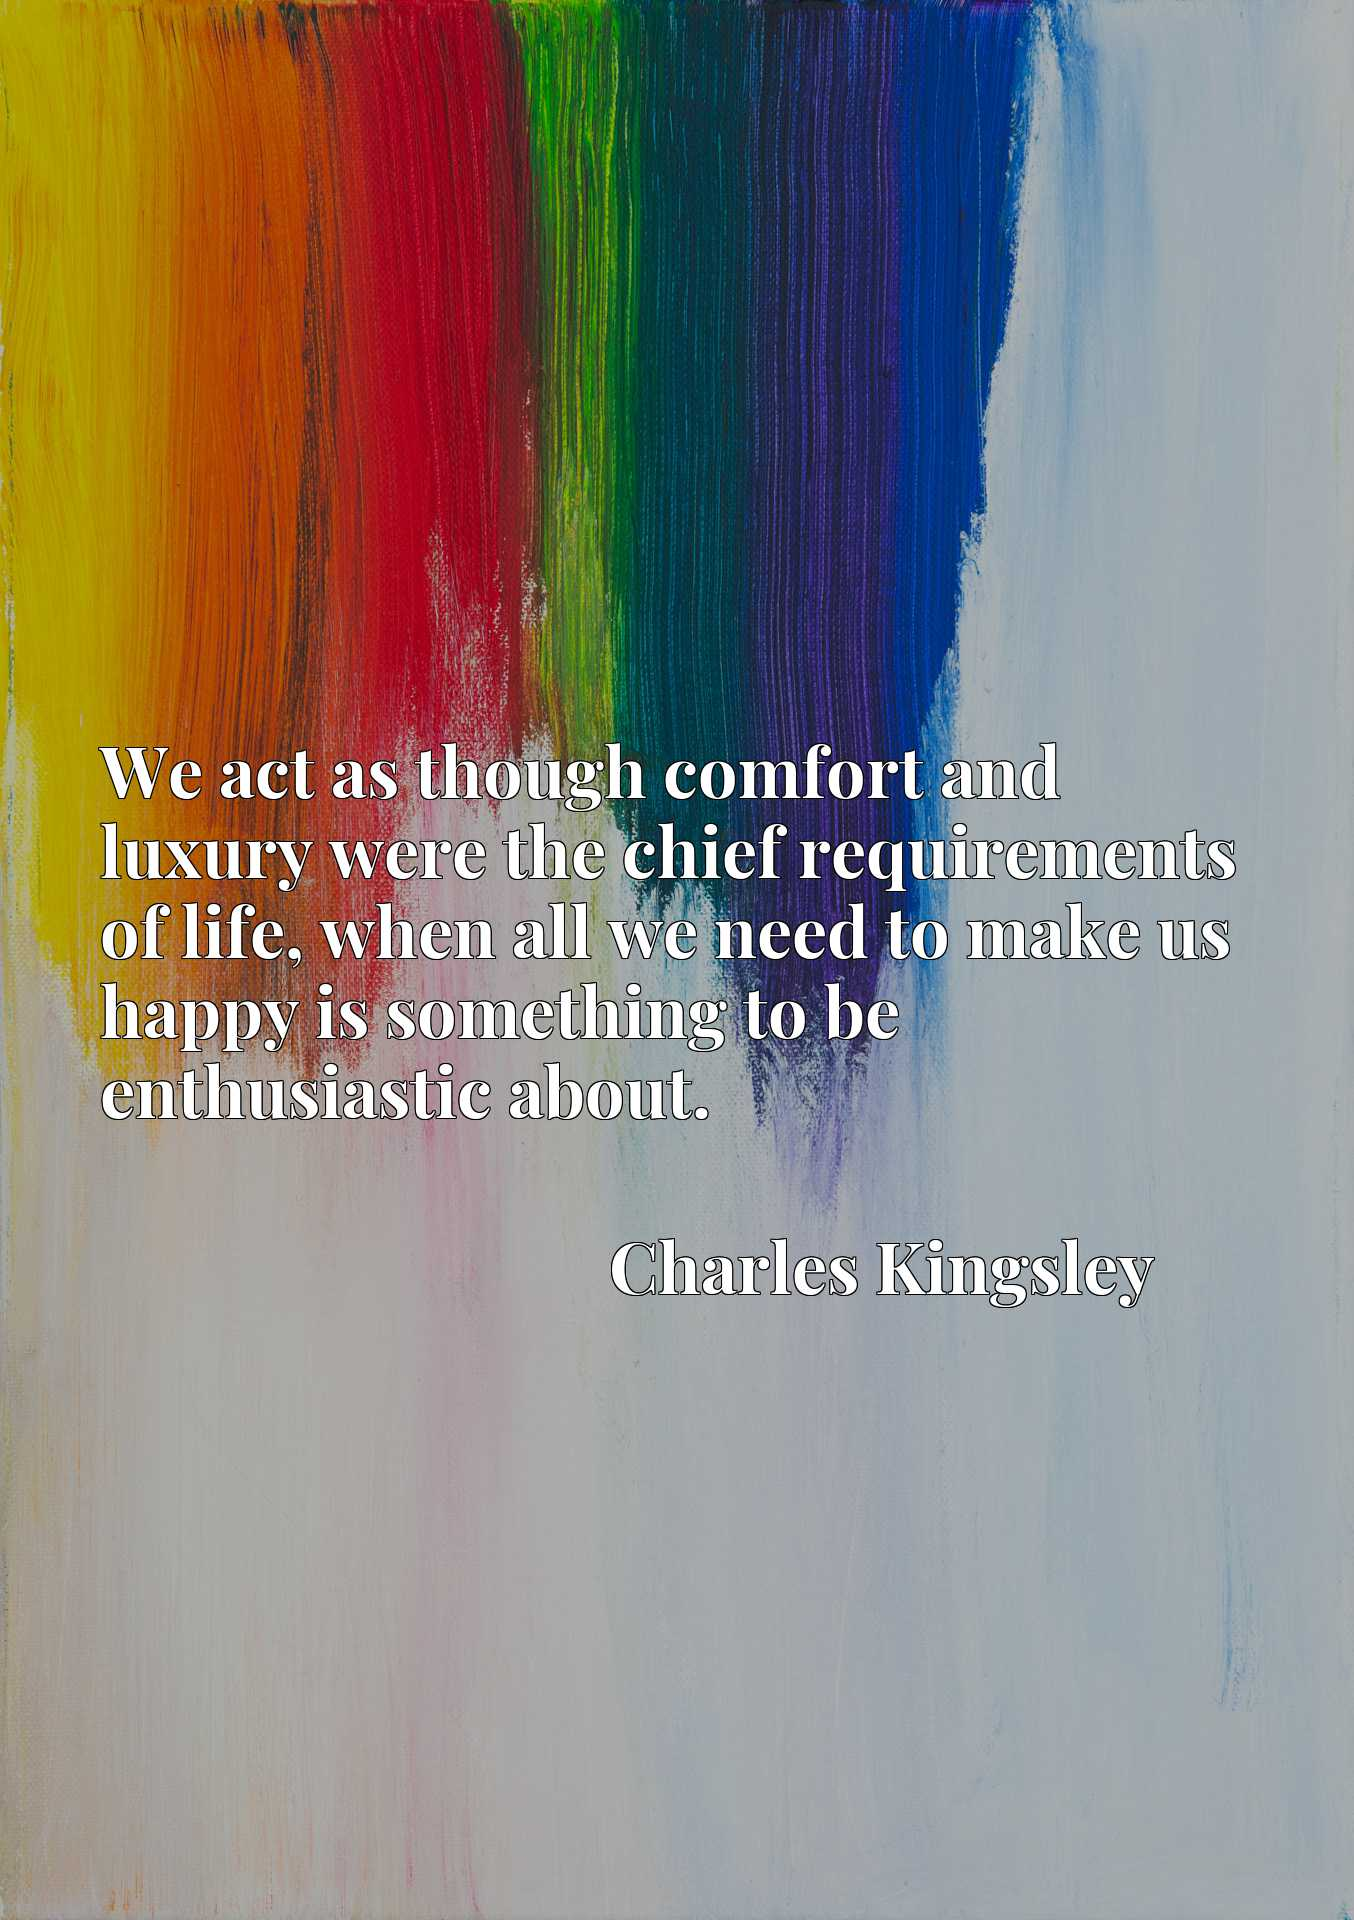 We act as though comfort and luxury were the chief requirements of life, when all we need to make us happy is something to be enthusiastic about.